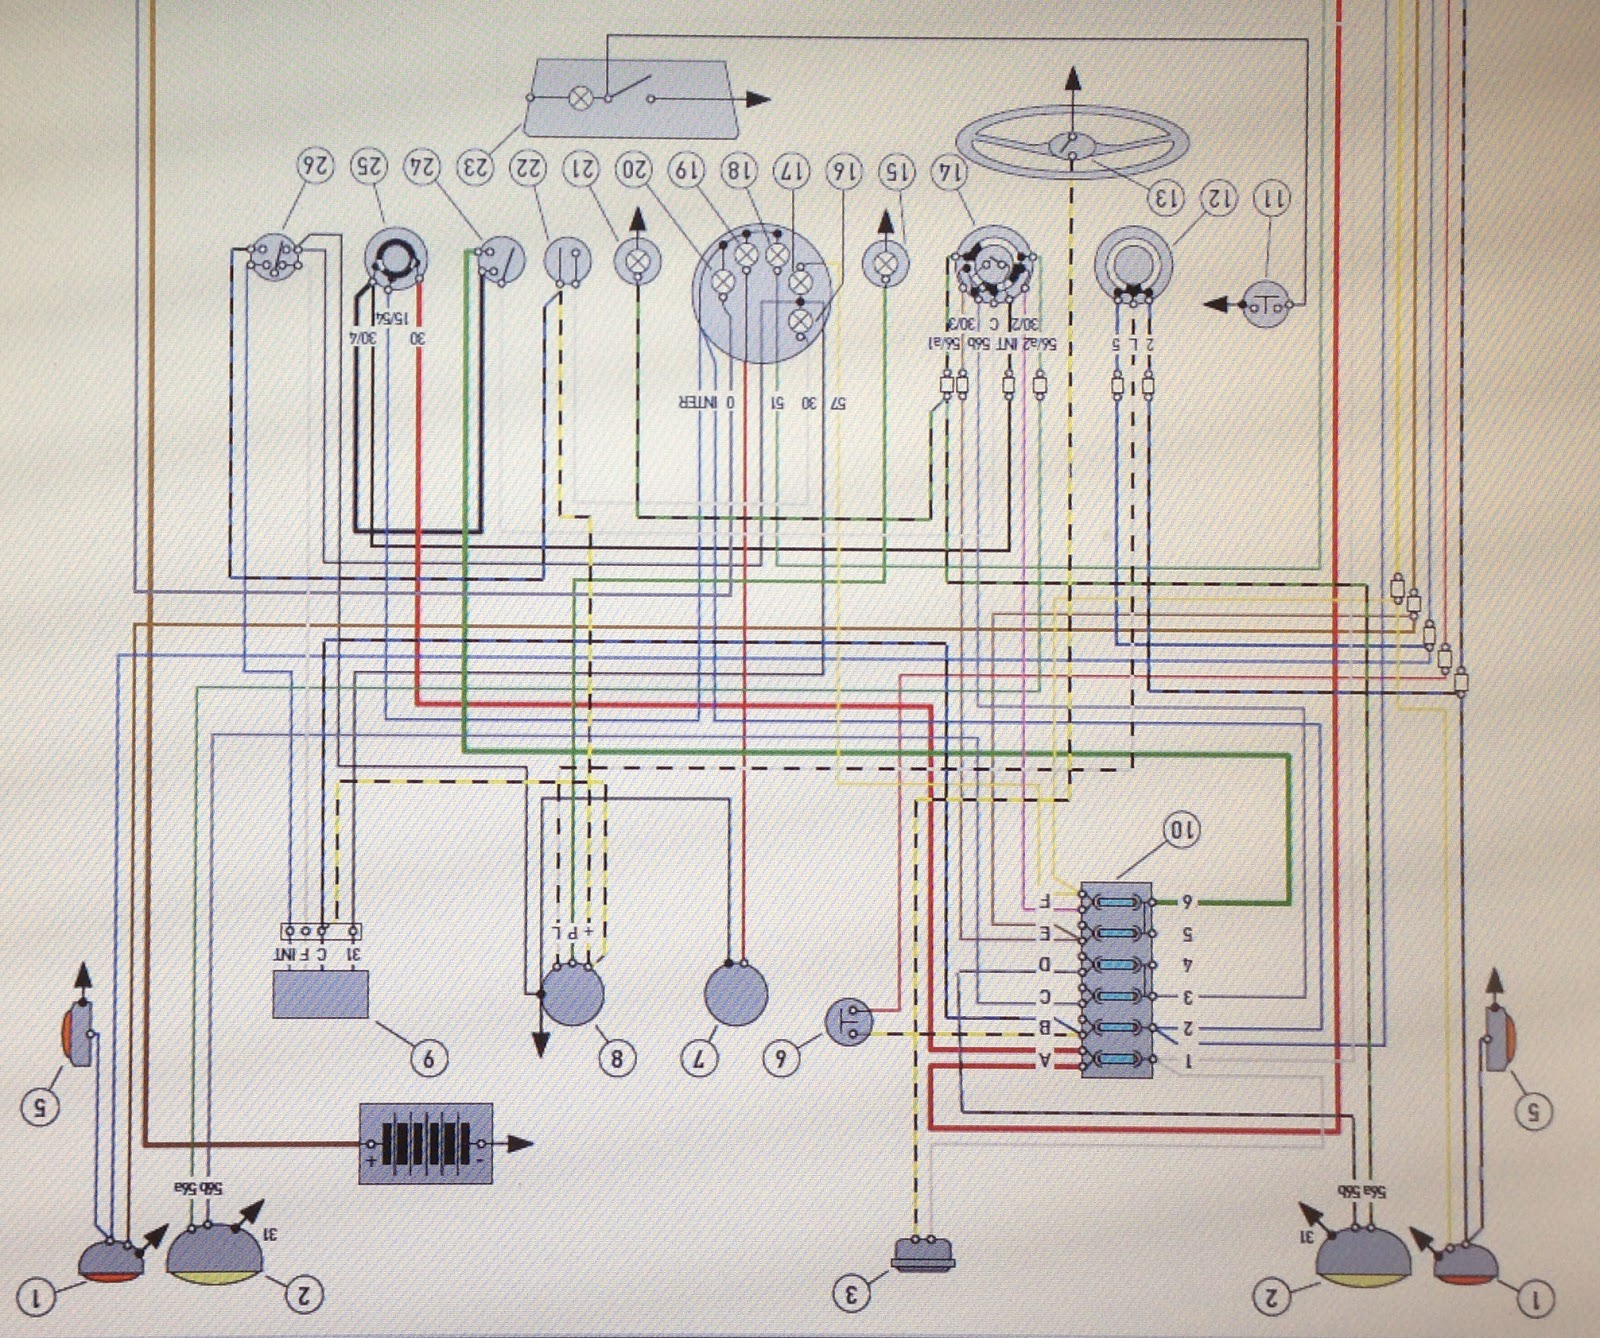 wiring 1973 fiat wiring diagramfiat x19 1300 wiring diagram index listing of wiring diagramsfiat qubo wiring diagram wiring diagram schematicsfiat